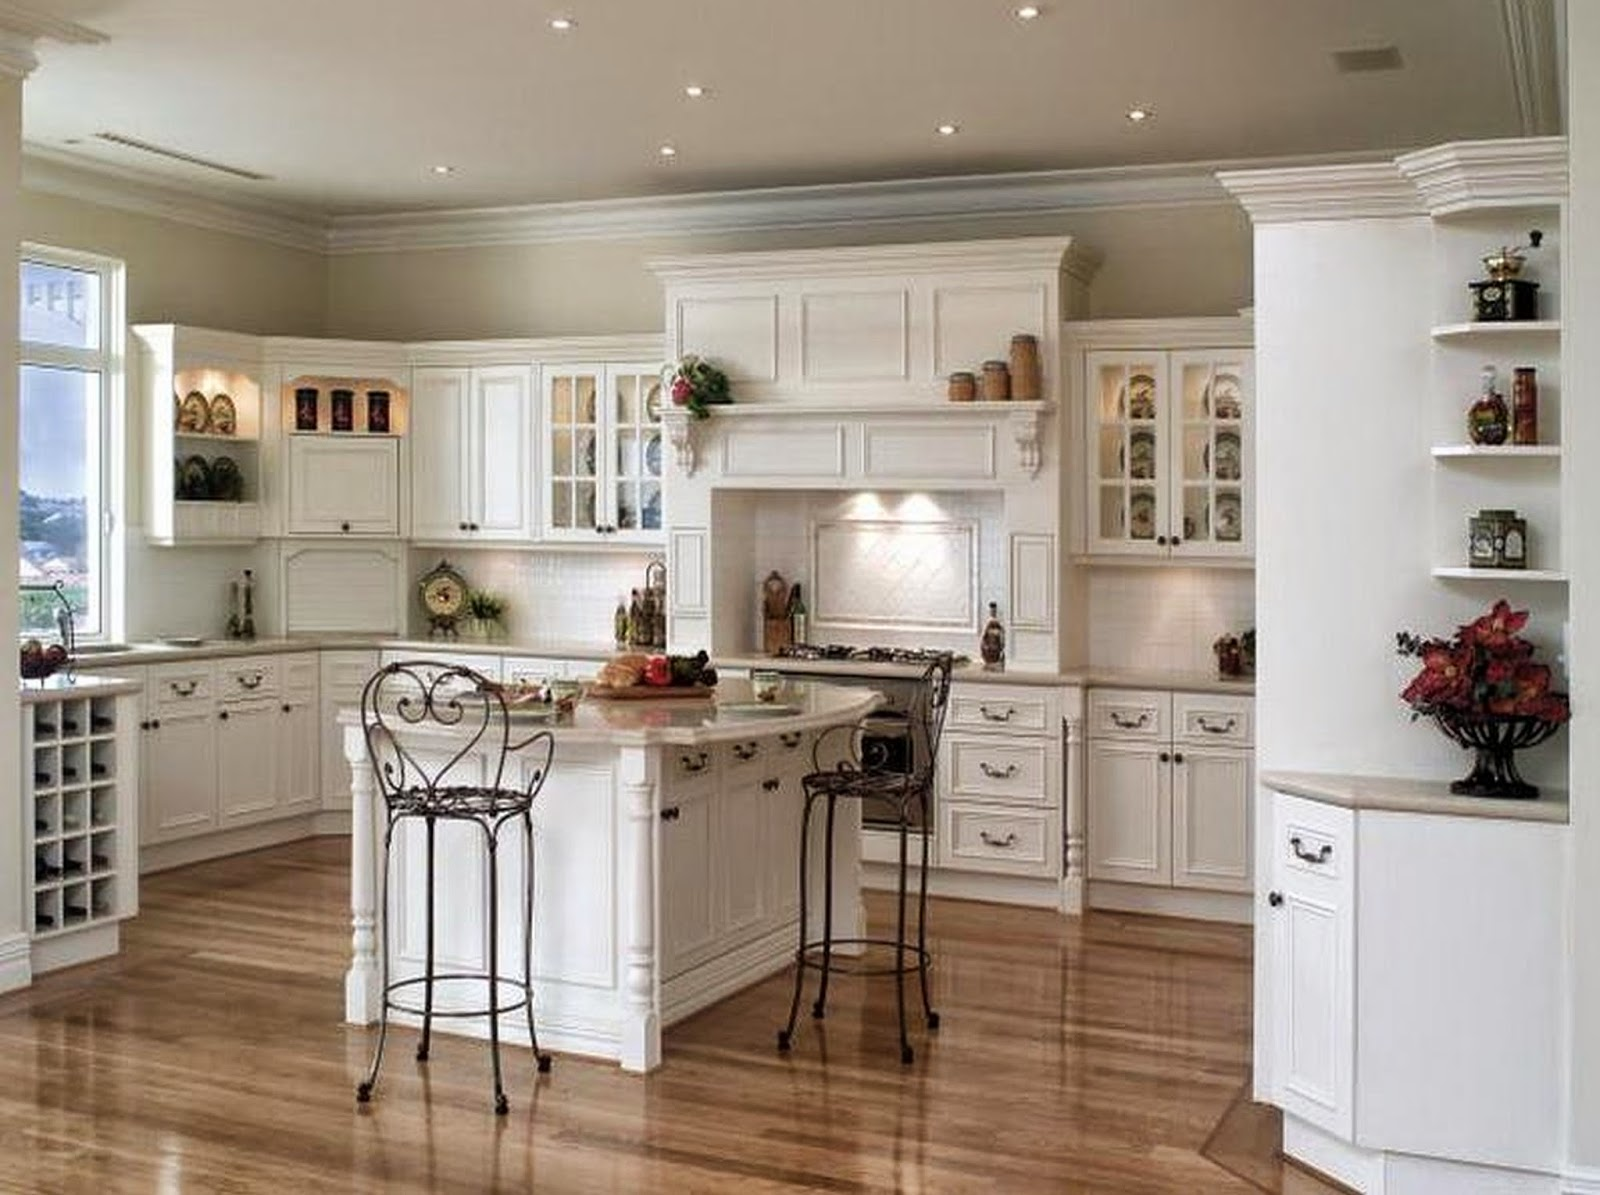 White French Provincial Kitchen Decorating Ideas Smart Home Designs